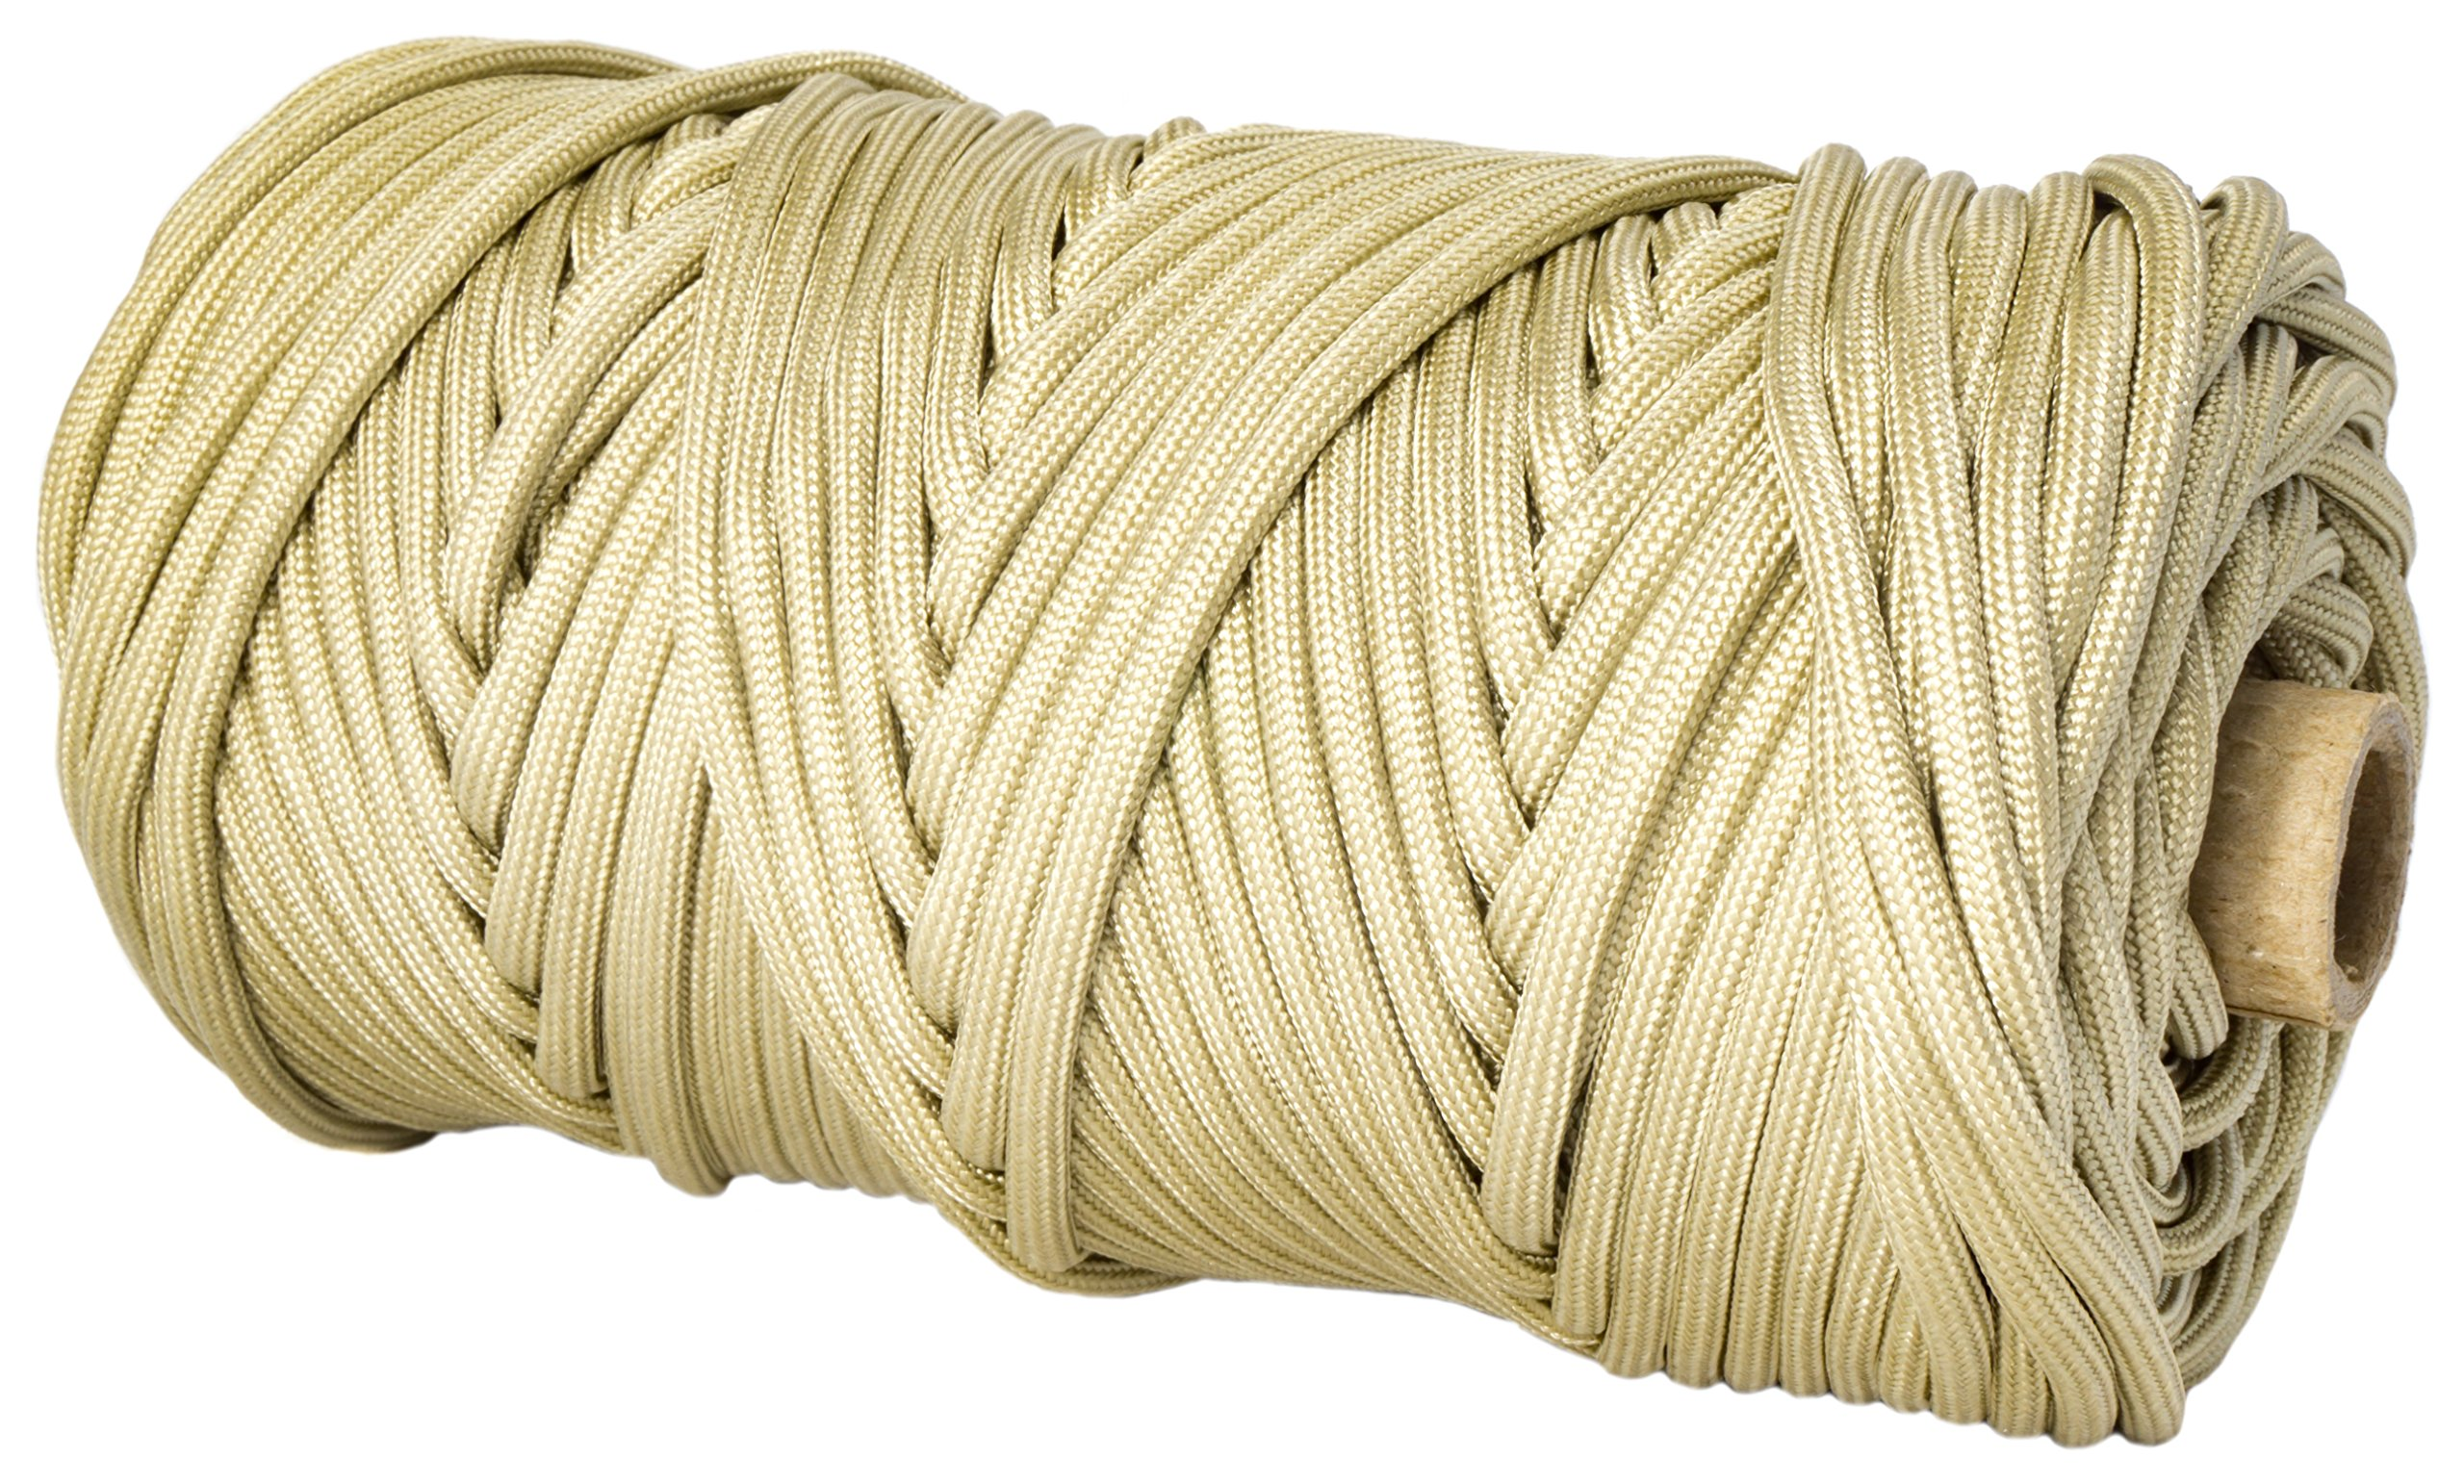 TOUGH-GRID 550lb Buckskin Paracord/Parachute Cord - 100% Nylon Genuine Mil-Spec Type III Paracord Used by The US Military - Great for Bracelets and Lanyards - Made in The USA. 500Ft. - Buckskin by TOUGH-GRID (Image #1)